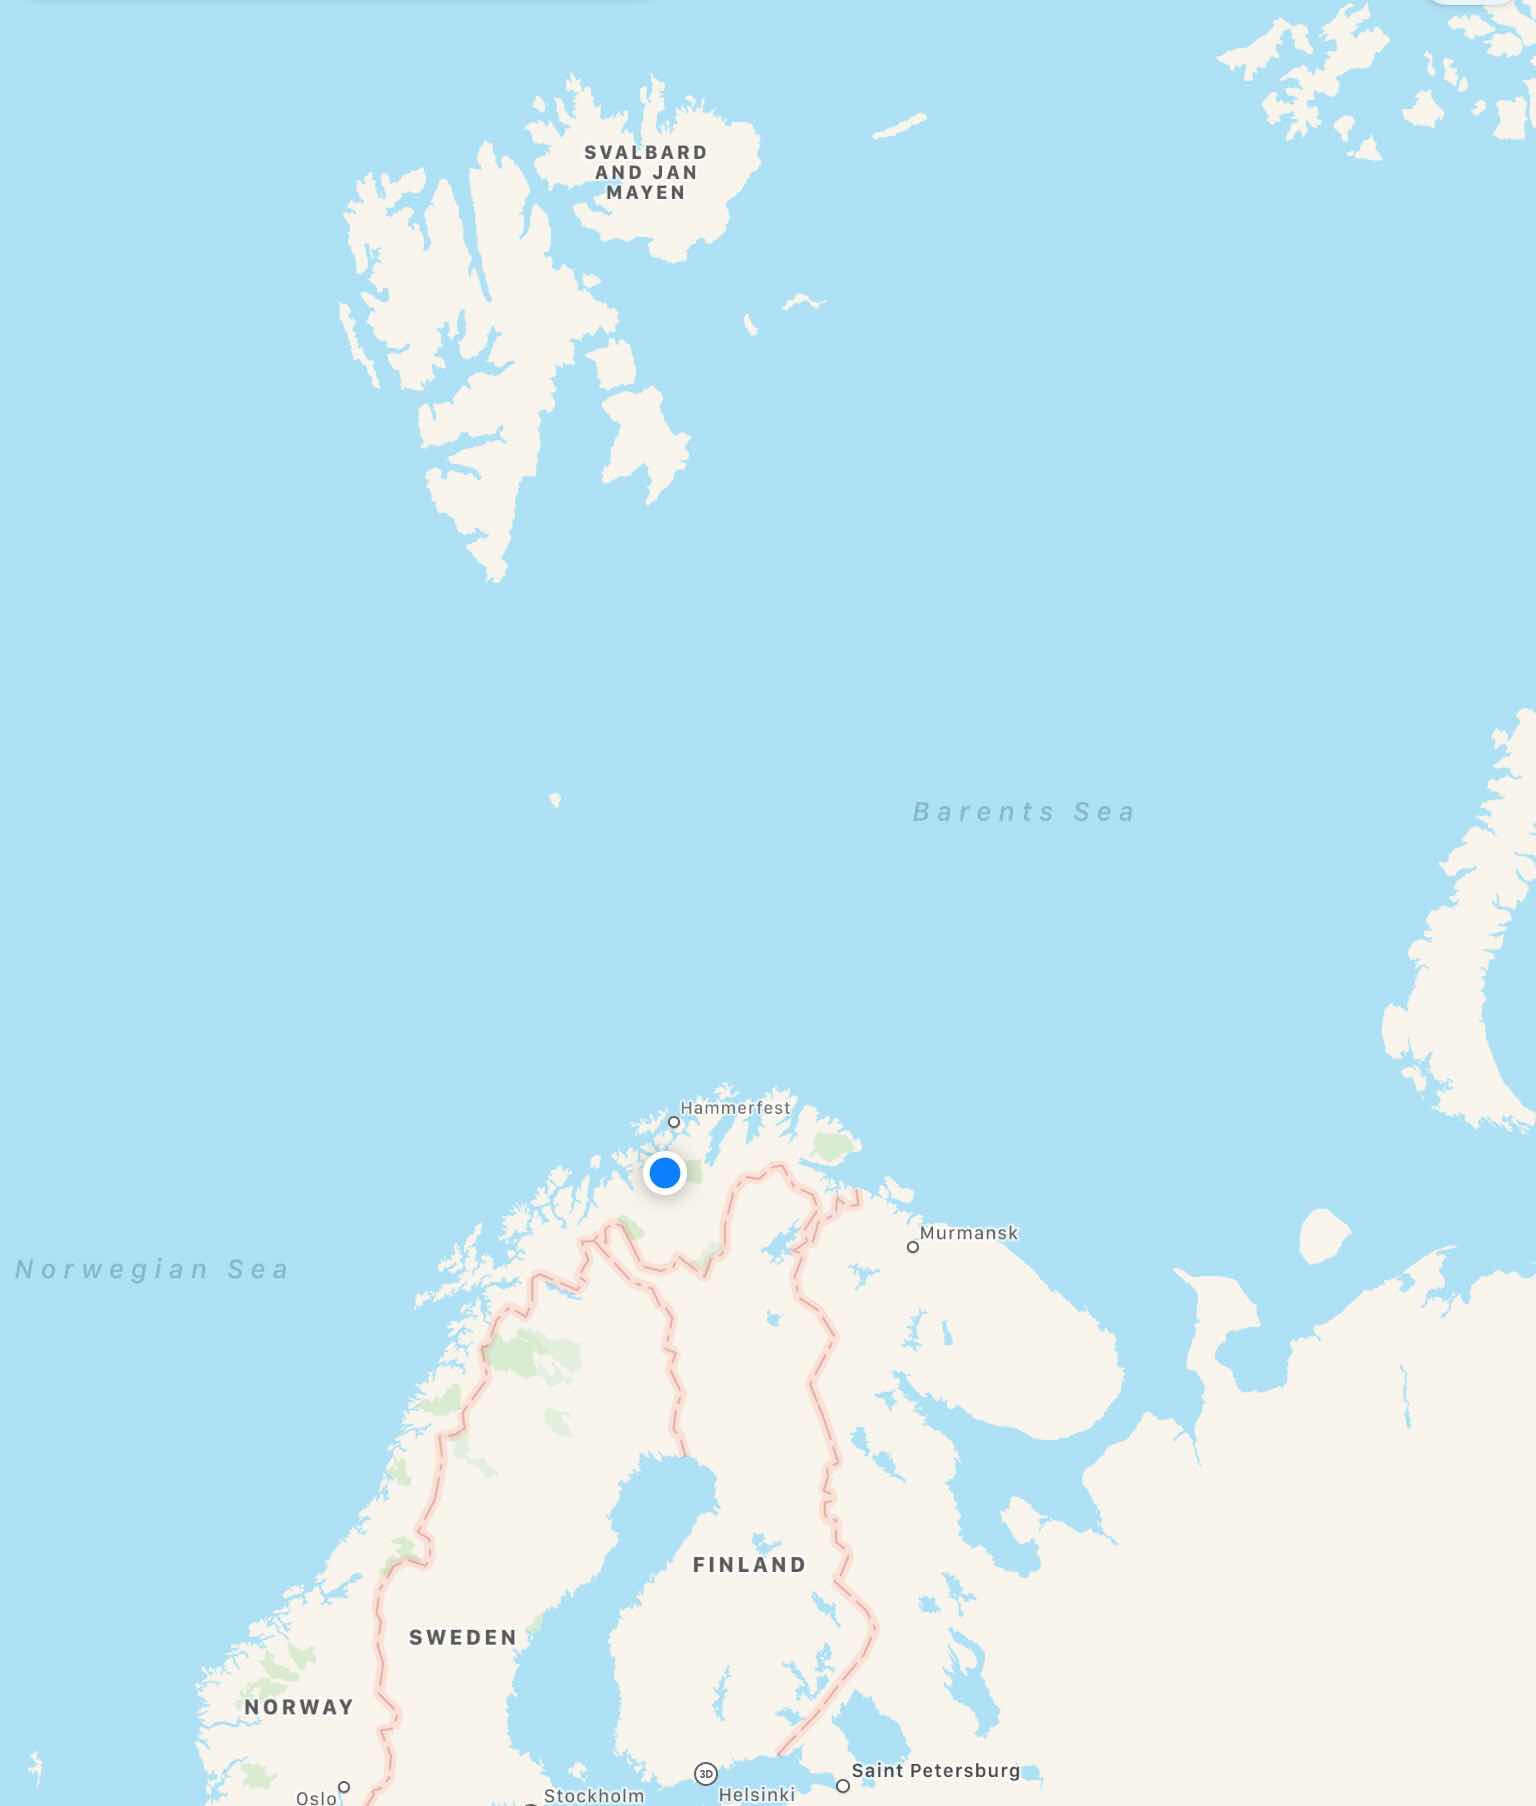 of Alta, Norway on our Viking Sky cruise in search of the northern lights